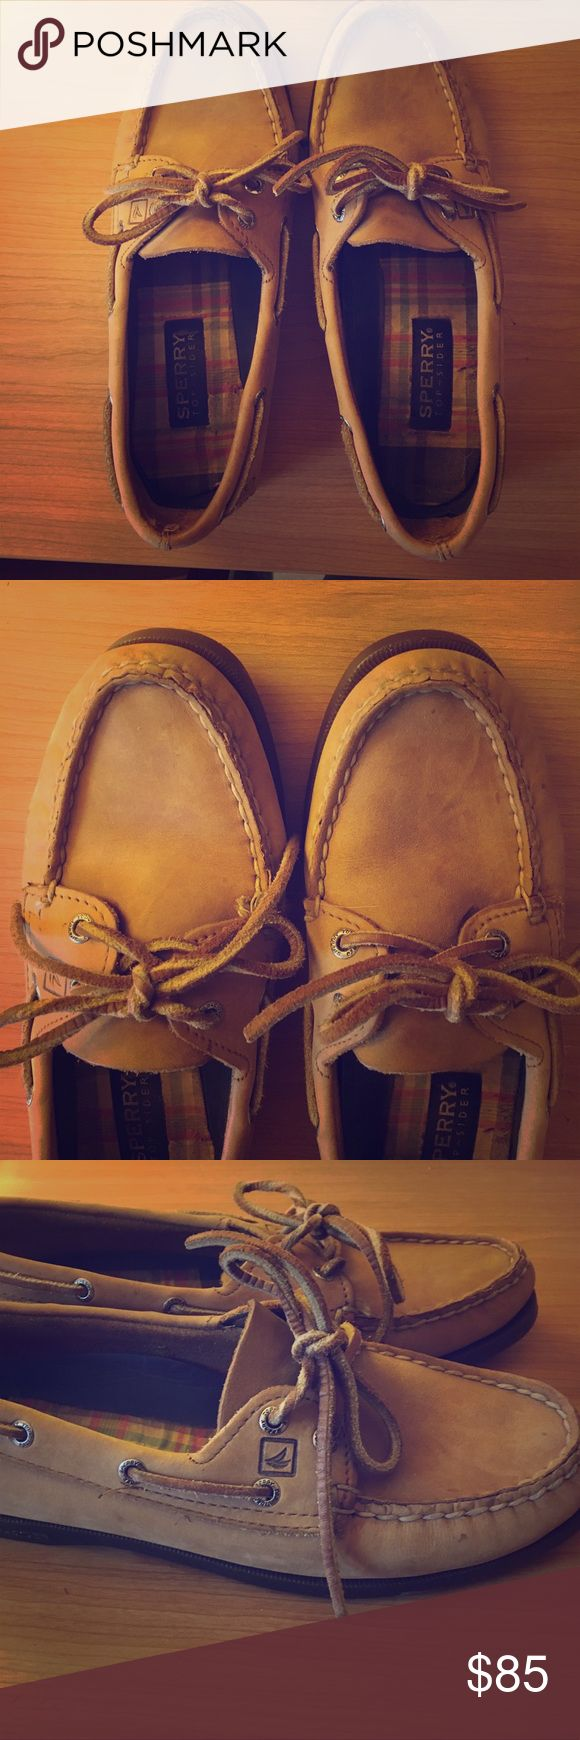 Size 7.5 Genuine Leather Sperry Boat Shoes Size 7.5 Genuine Leather Sperry Boat Shoes. Worn a hand full of times in great condition Sperry Top-Sider Shoes Flats & Loafers